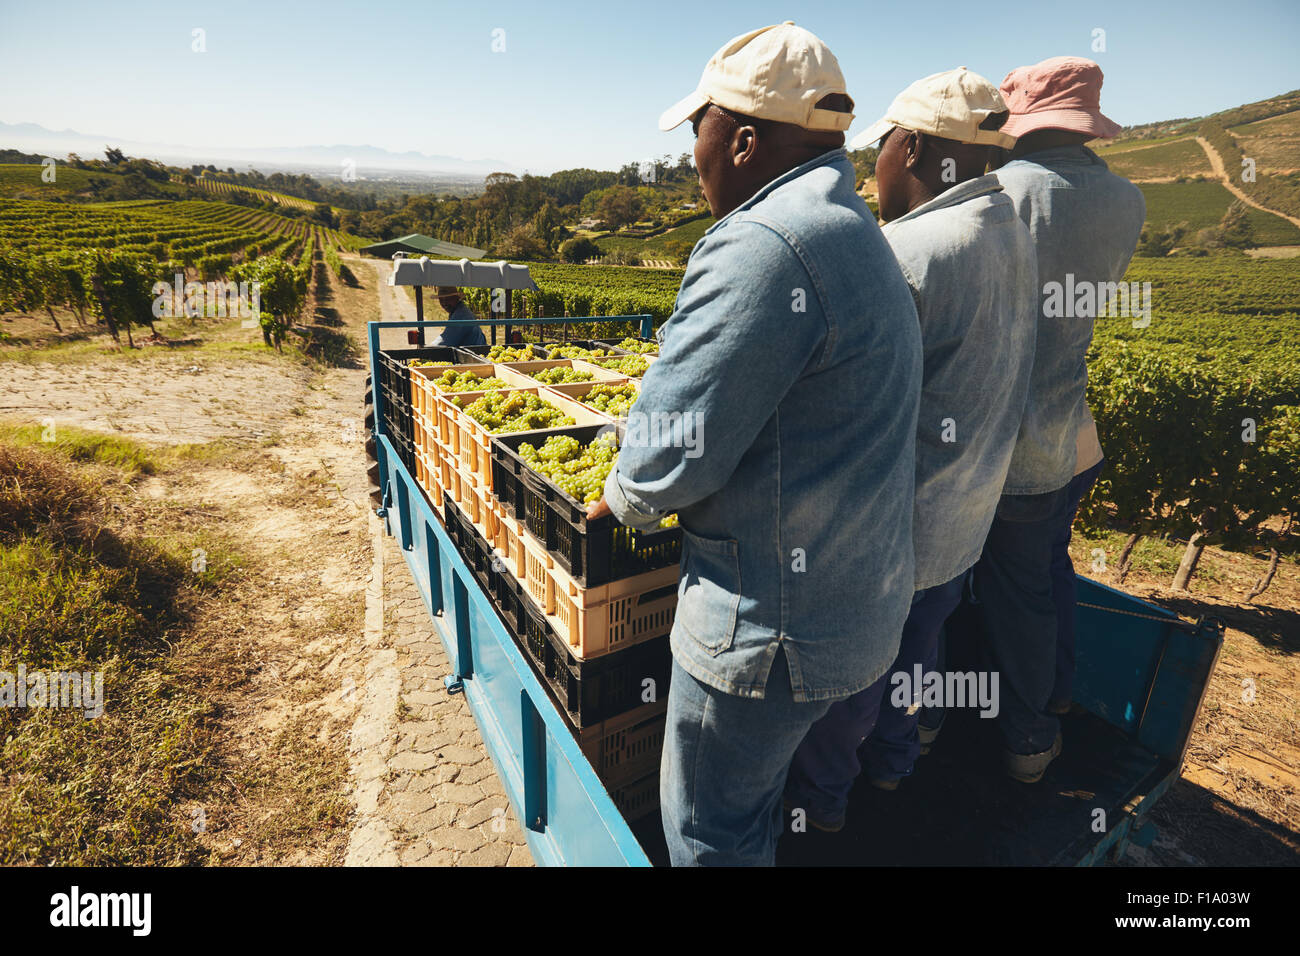 Grapes boxes being delivered from the vineyard to wine manufacturer on a tractor trailer with farmers. Transporting - Stock Image